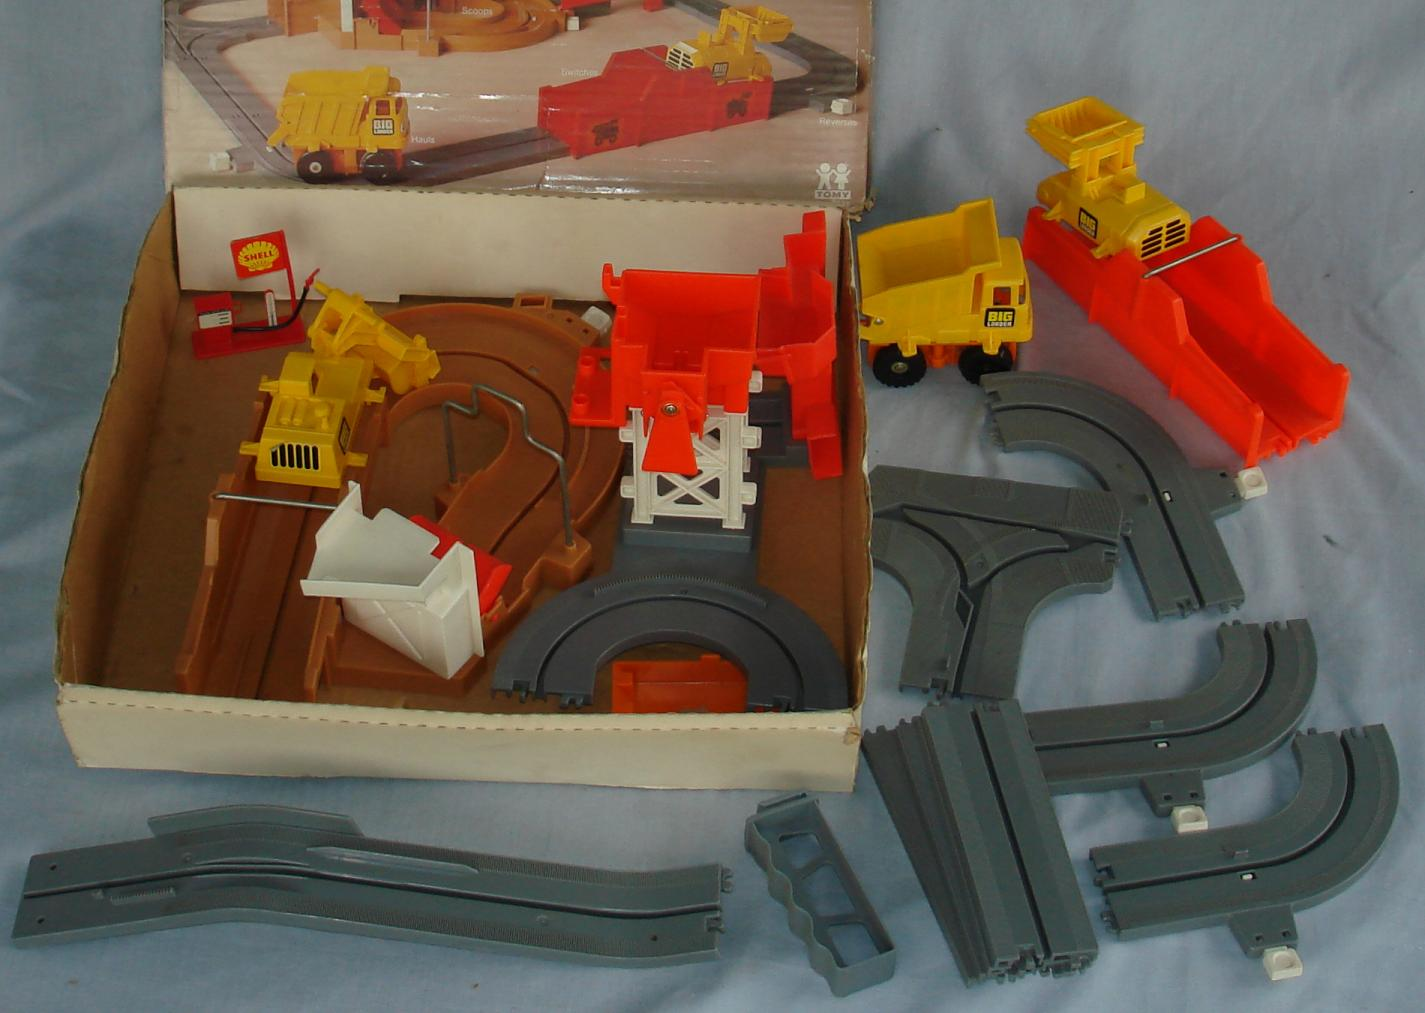 Tomy Big Loader Construction Set #5001 Track Contents